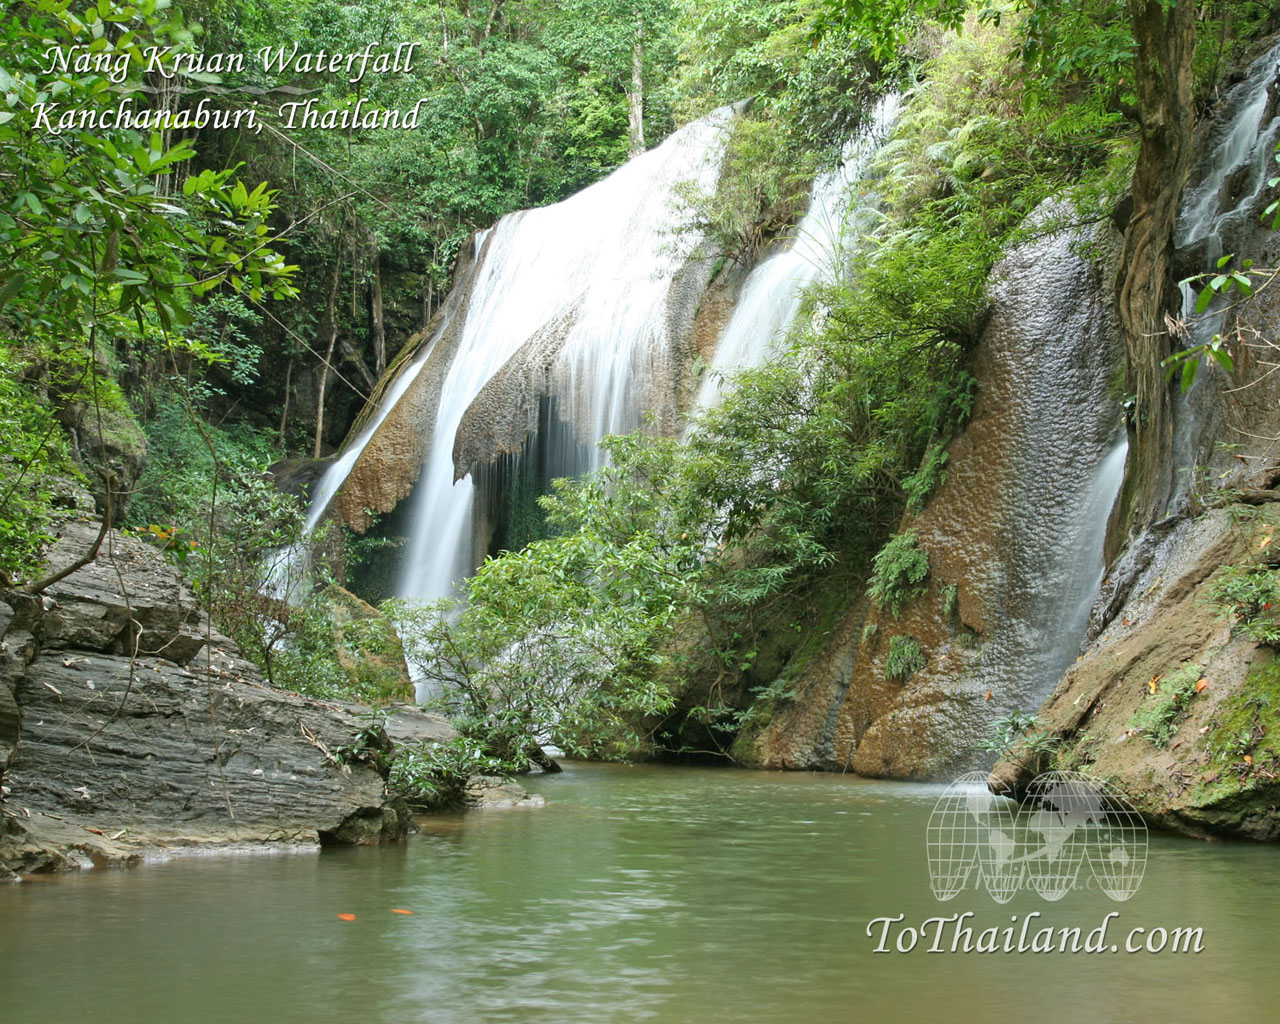 Kanchanaburi Thailand  city images : Posted in: Asia , Kanchanaburi Thailand , Thailand